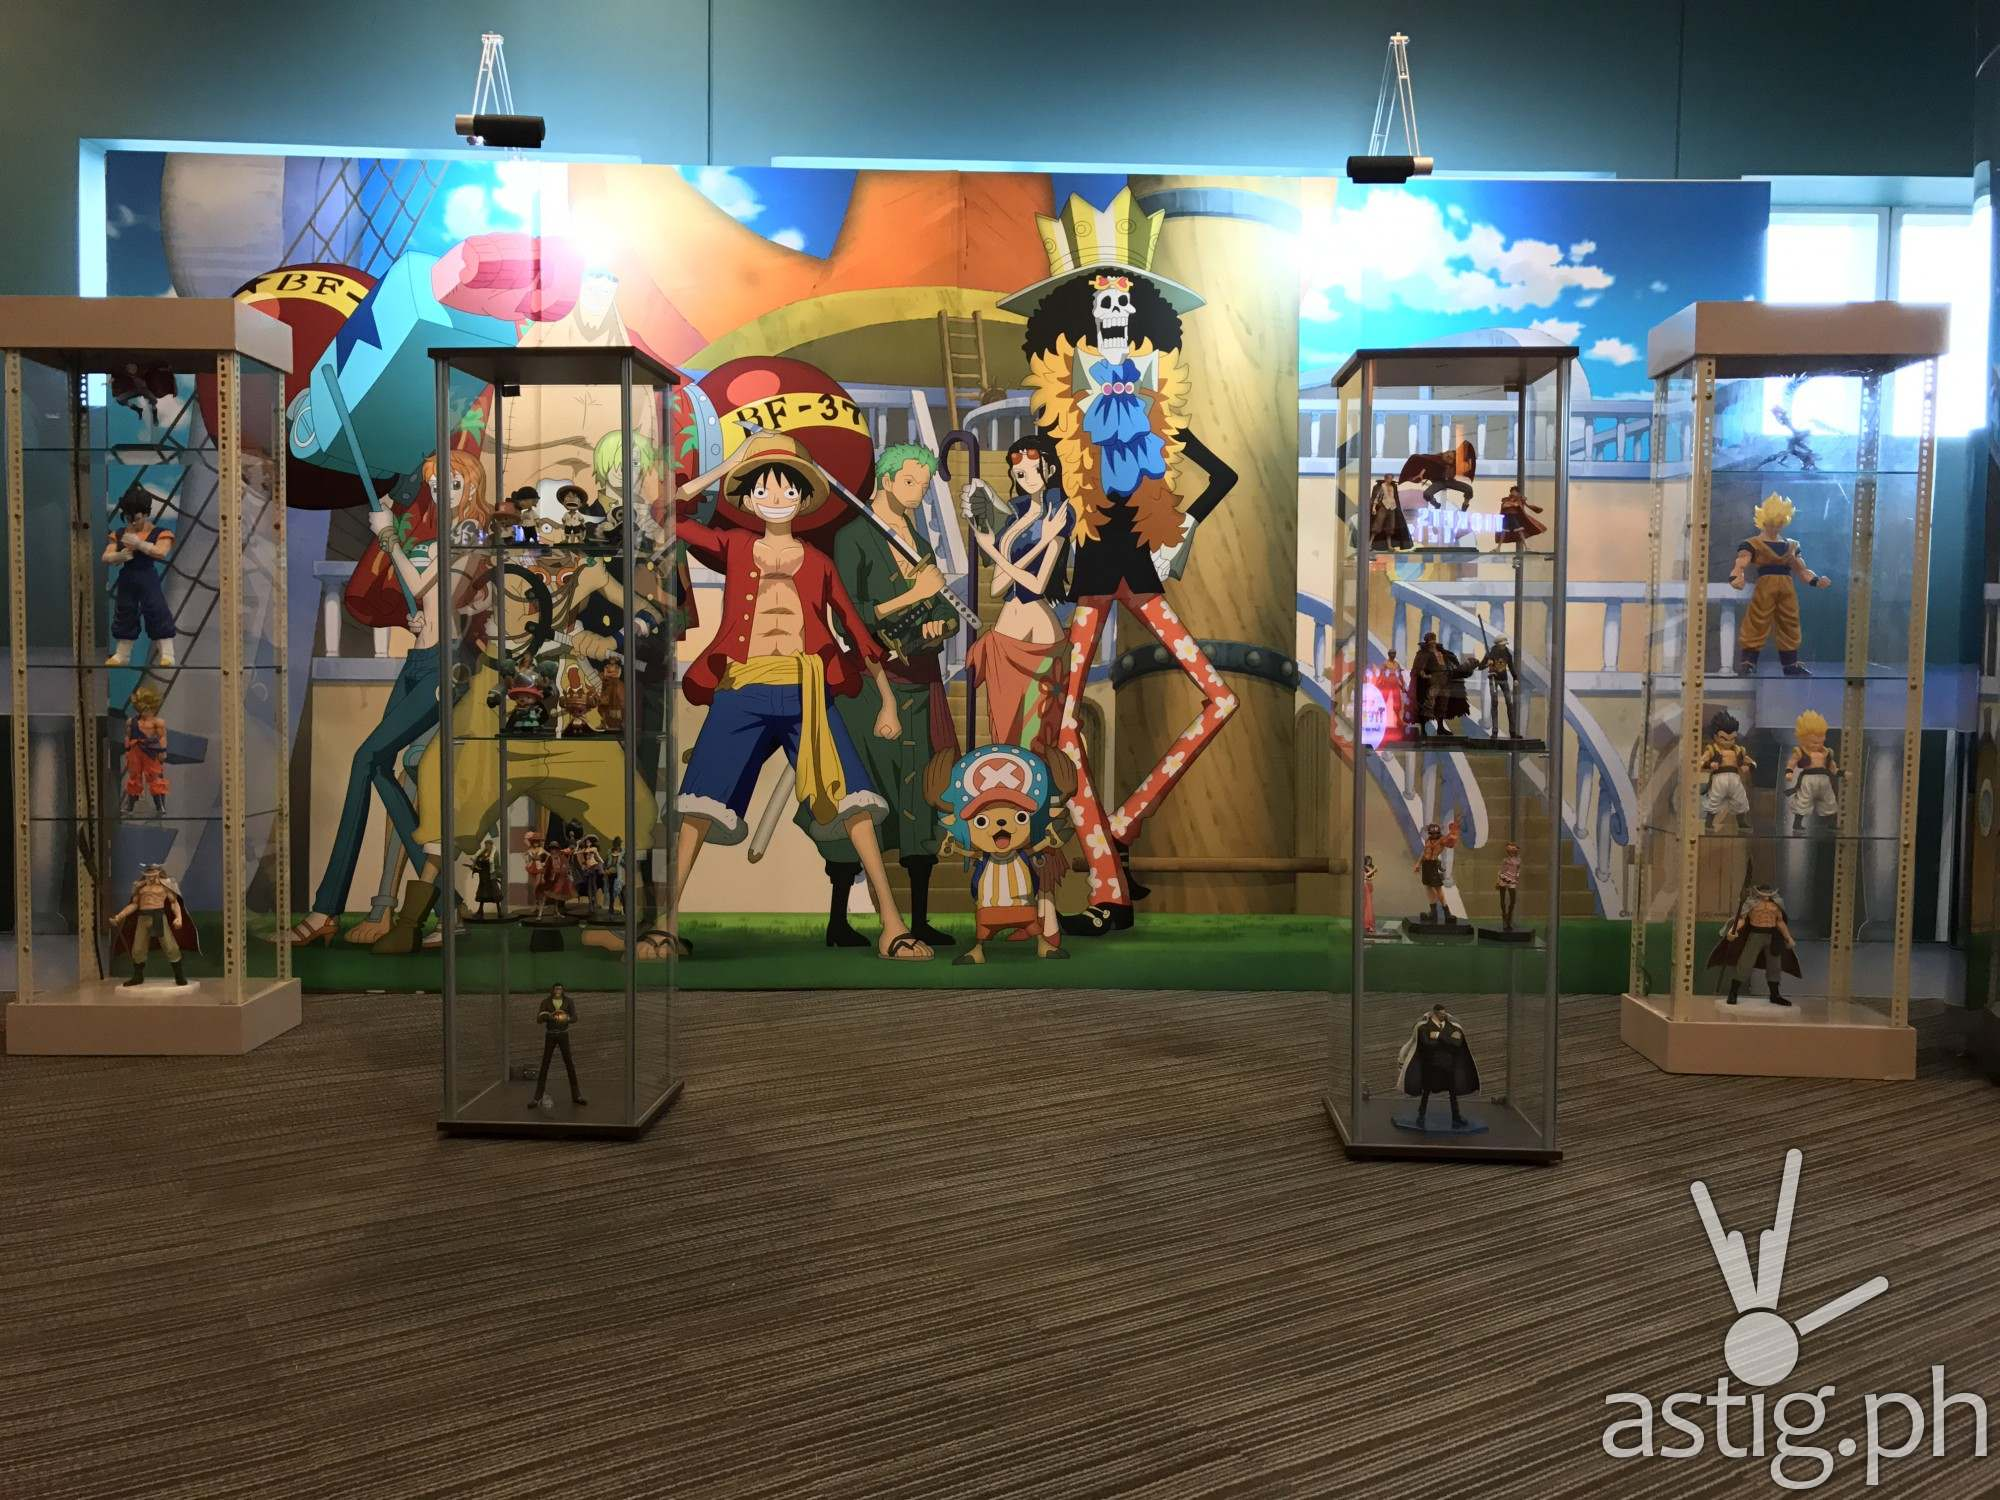 One Piece display at Animahenasyon 10